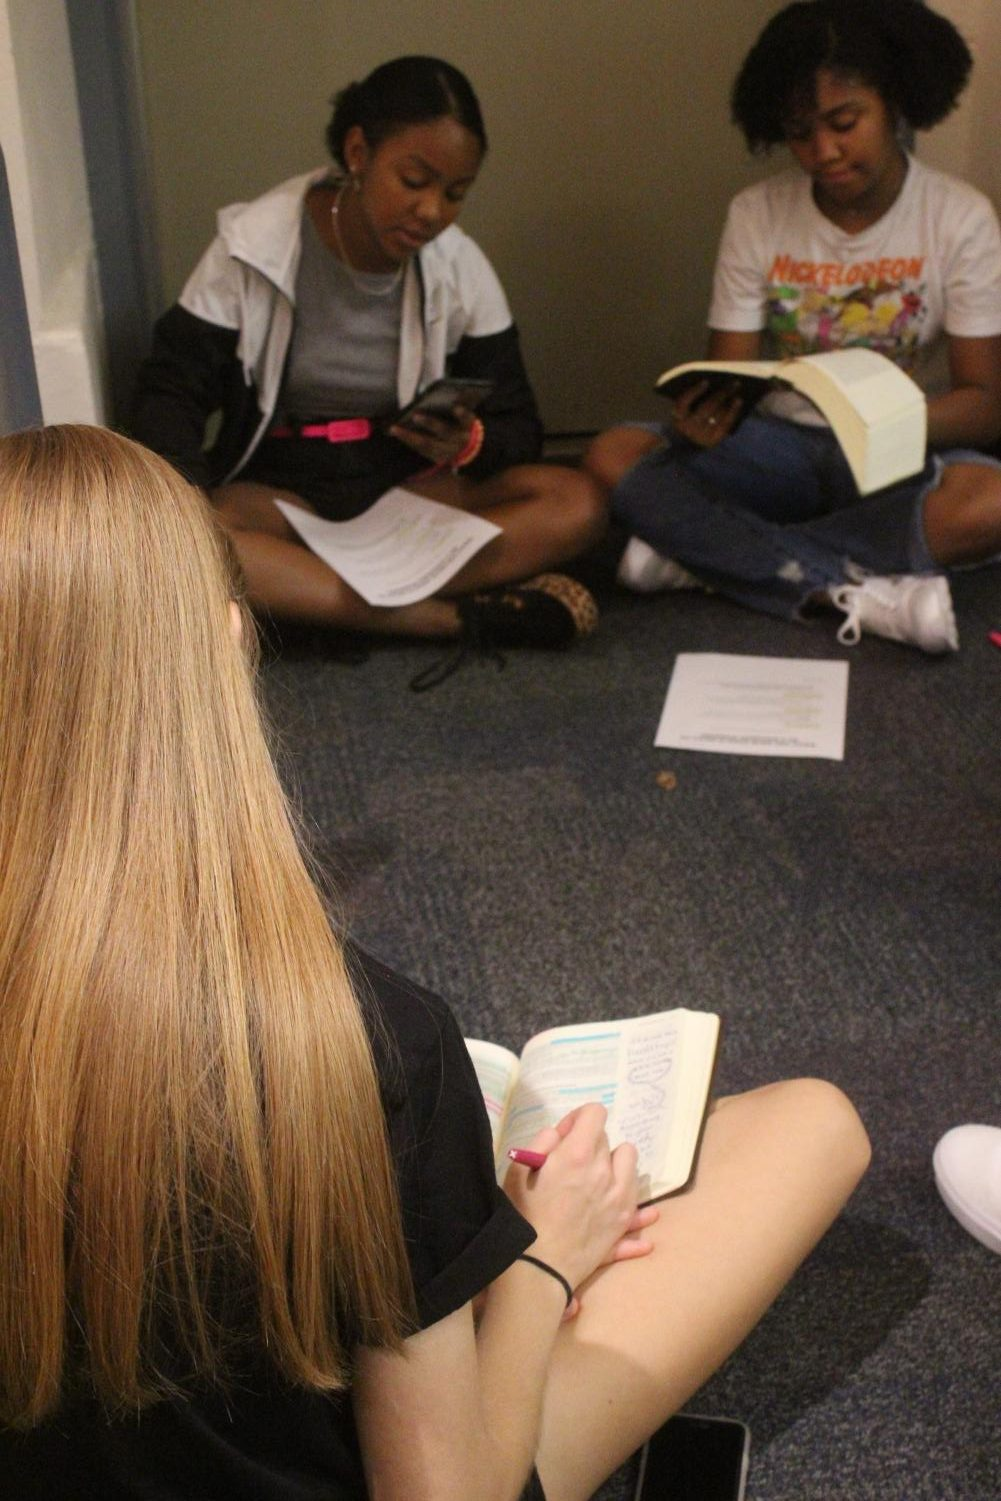 During the second Kingdom Workers meeting, sisters JoJo Roberts, senior, and Julia Roberts, freshman sit in a circle to read and discuss the passage.